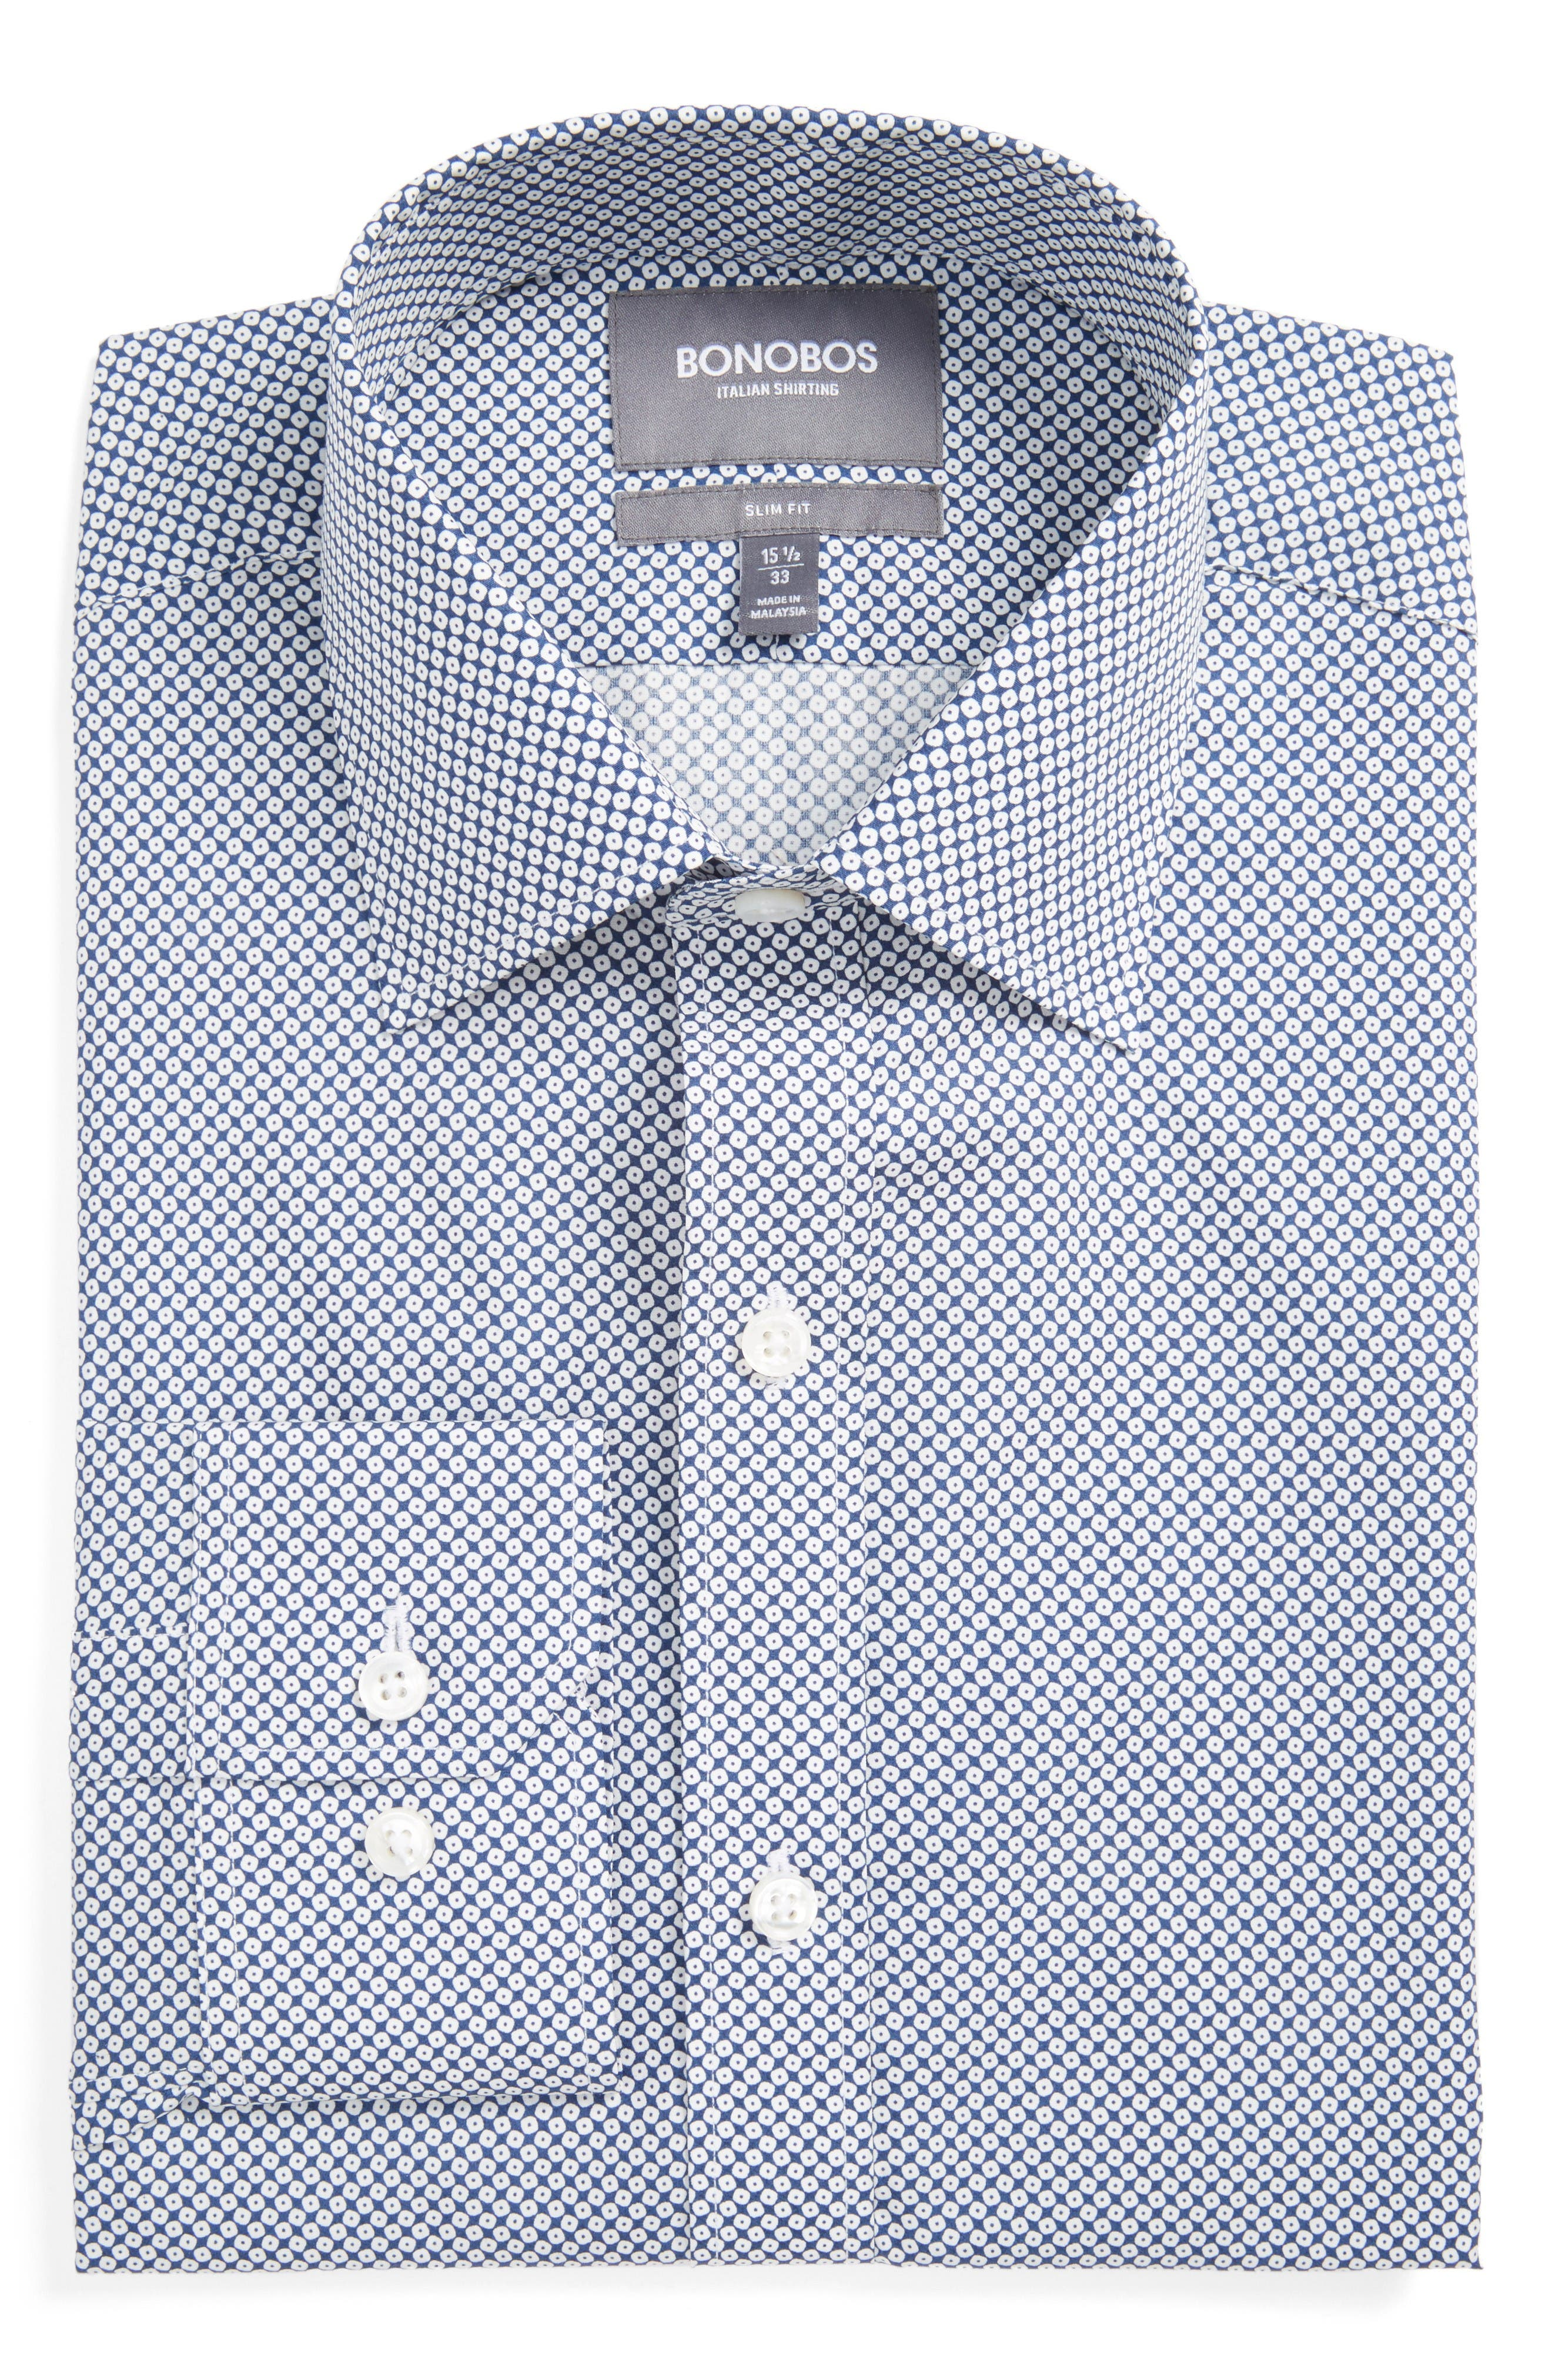 Alternate Image 1 Selected - Bonobos Americano Slim Fit Geometric Dress Shirt